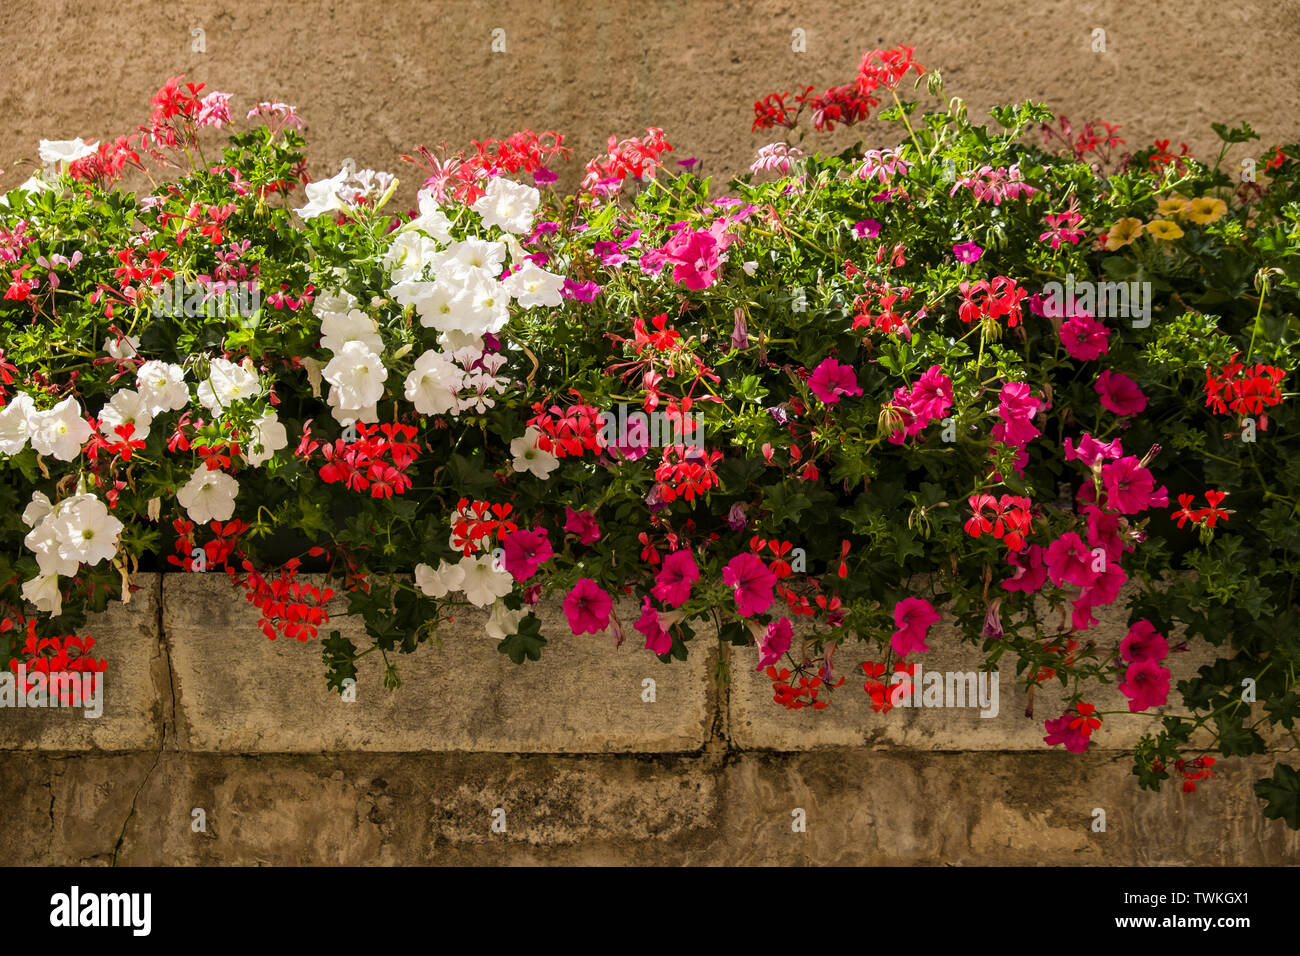 A densely packed stone trough overflowing with summer flowering plants. - Stock Image